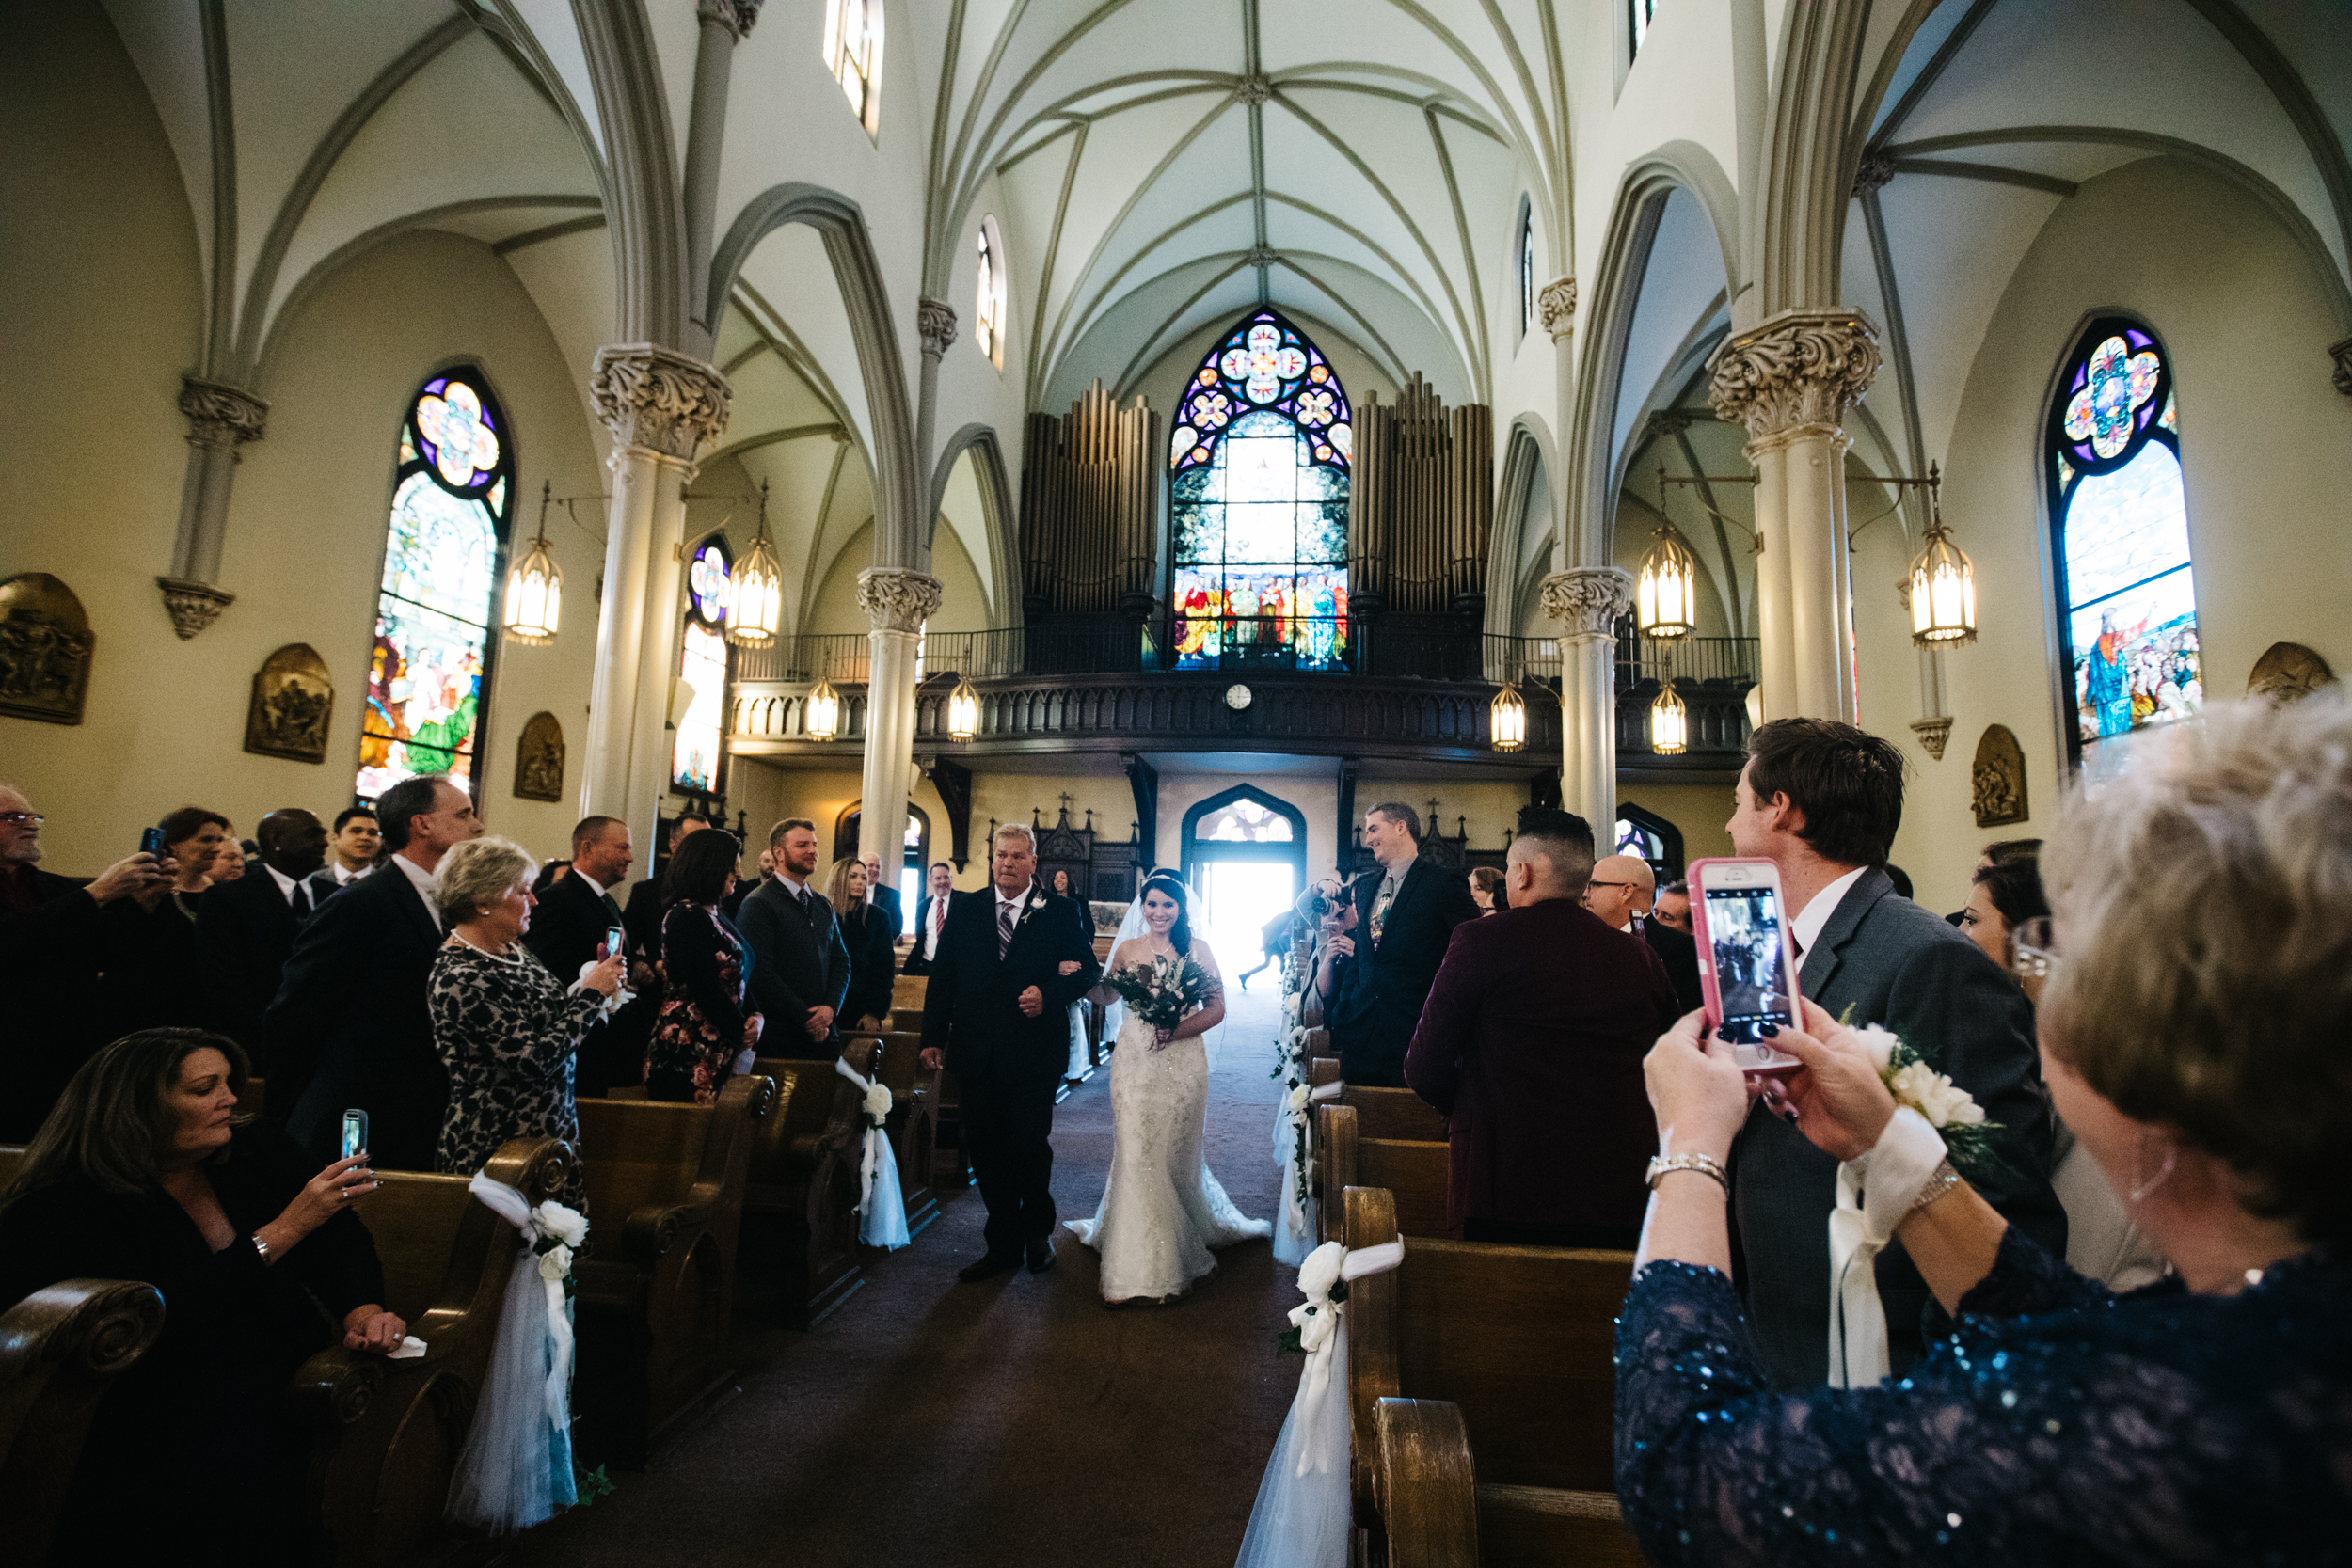 A happy beaming bride walking down the aisle at St. Mary on The Mount in Pittsburgh, PA on her wedding day.